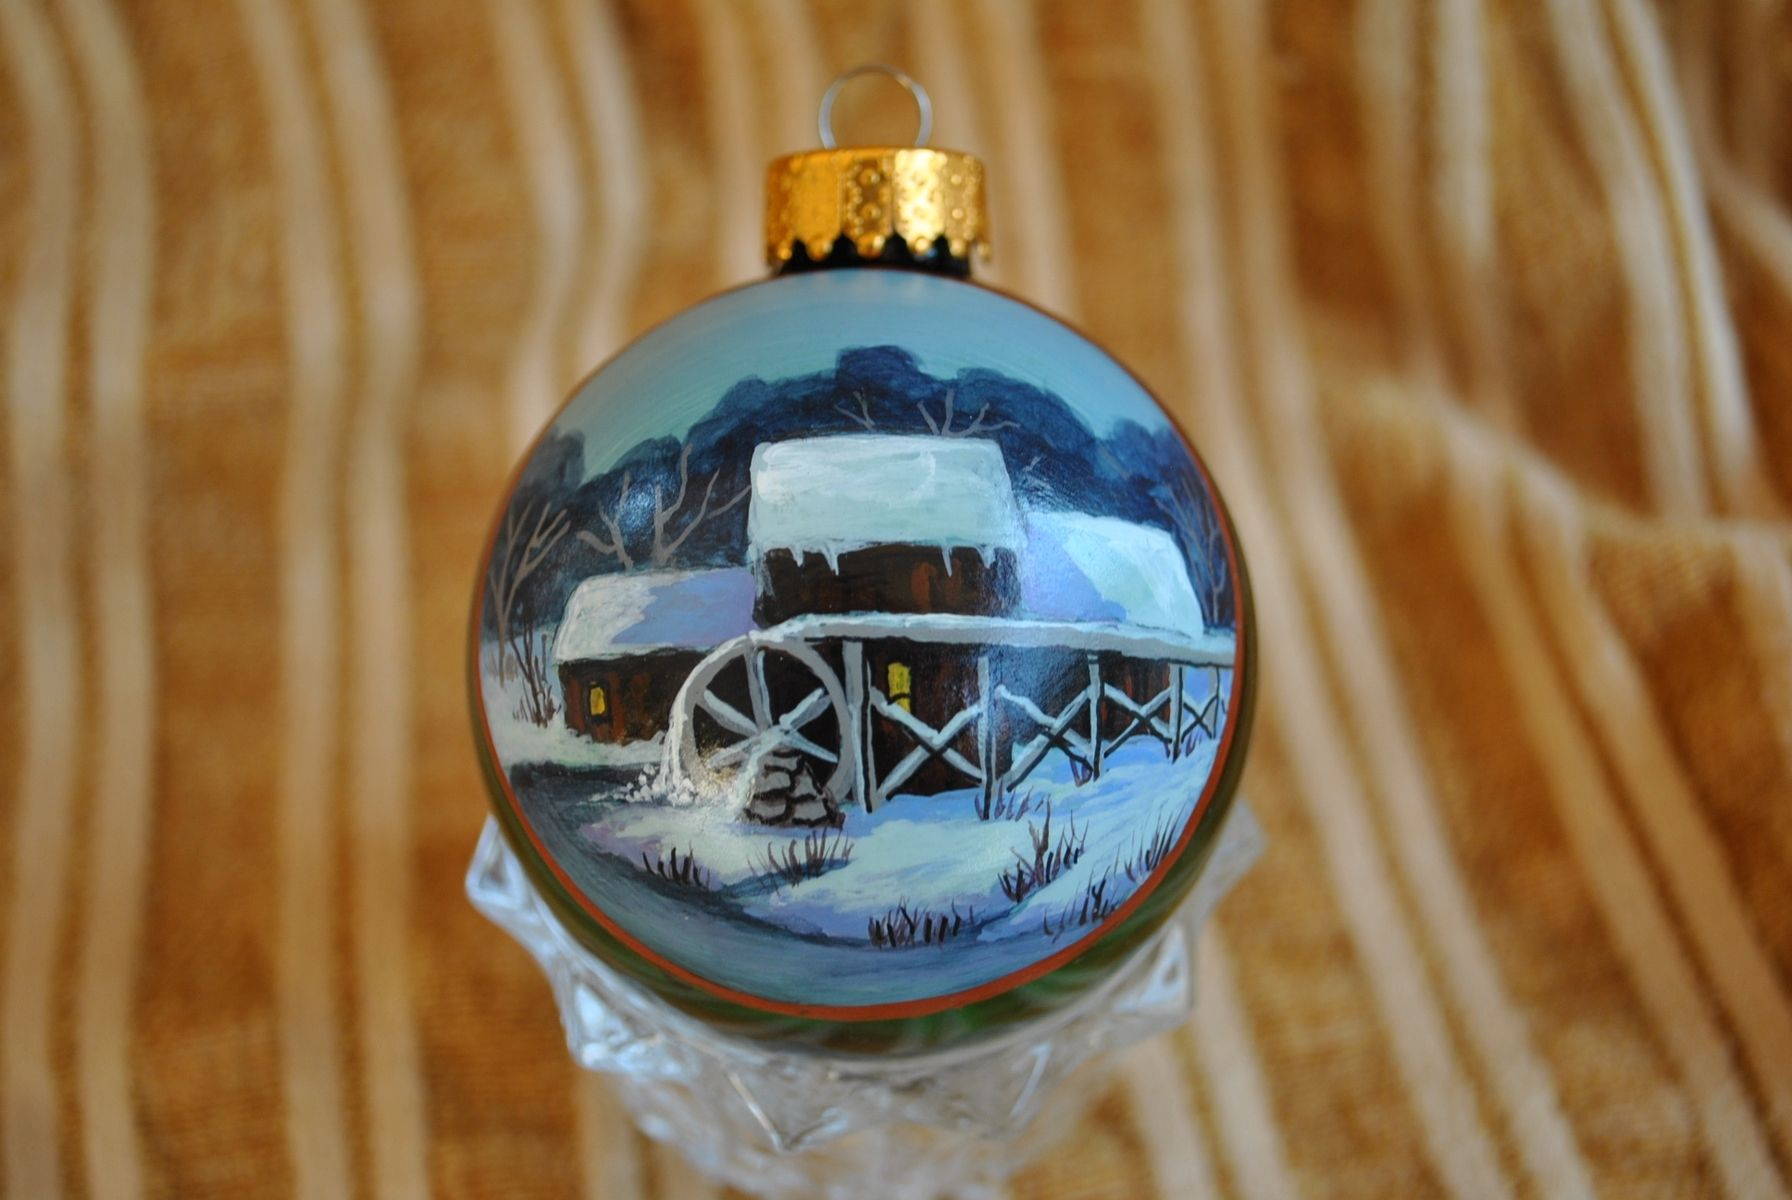 Custom Hand Painted Ornaments By Annetastic Designs Custommade Com